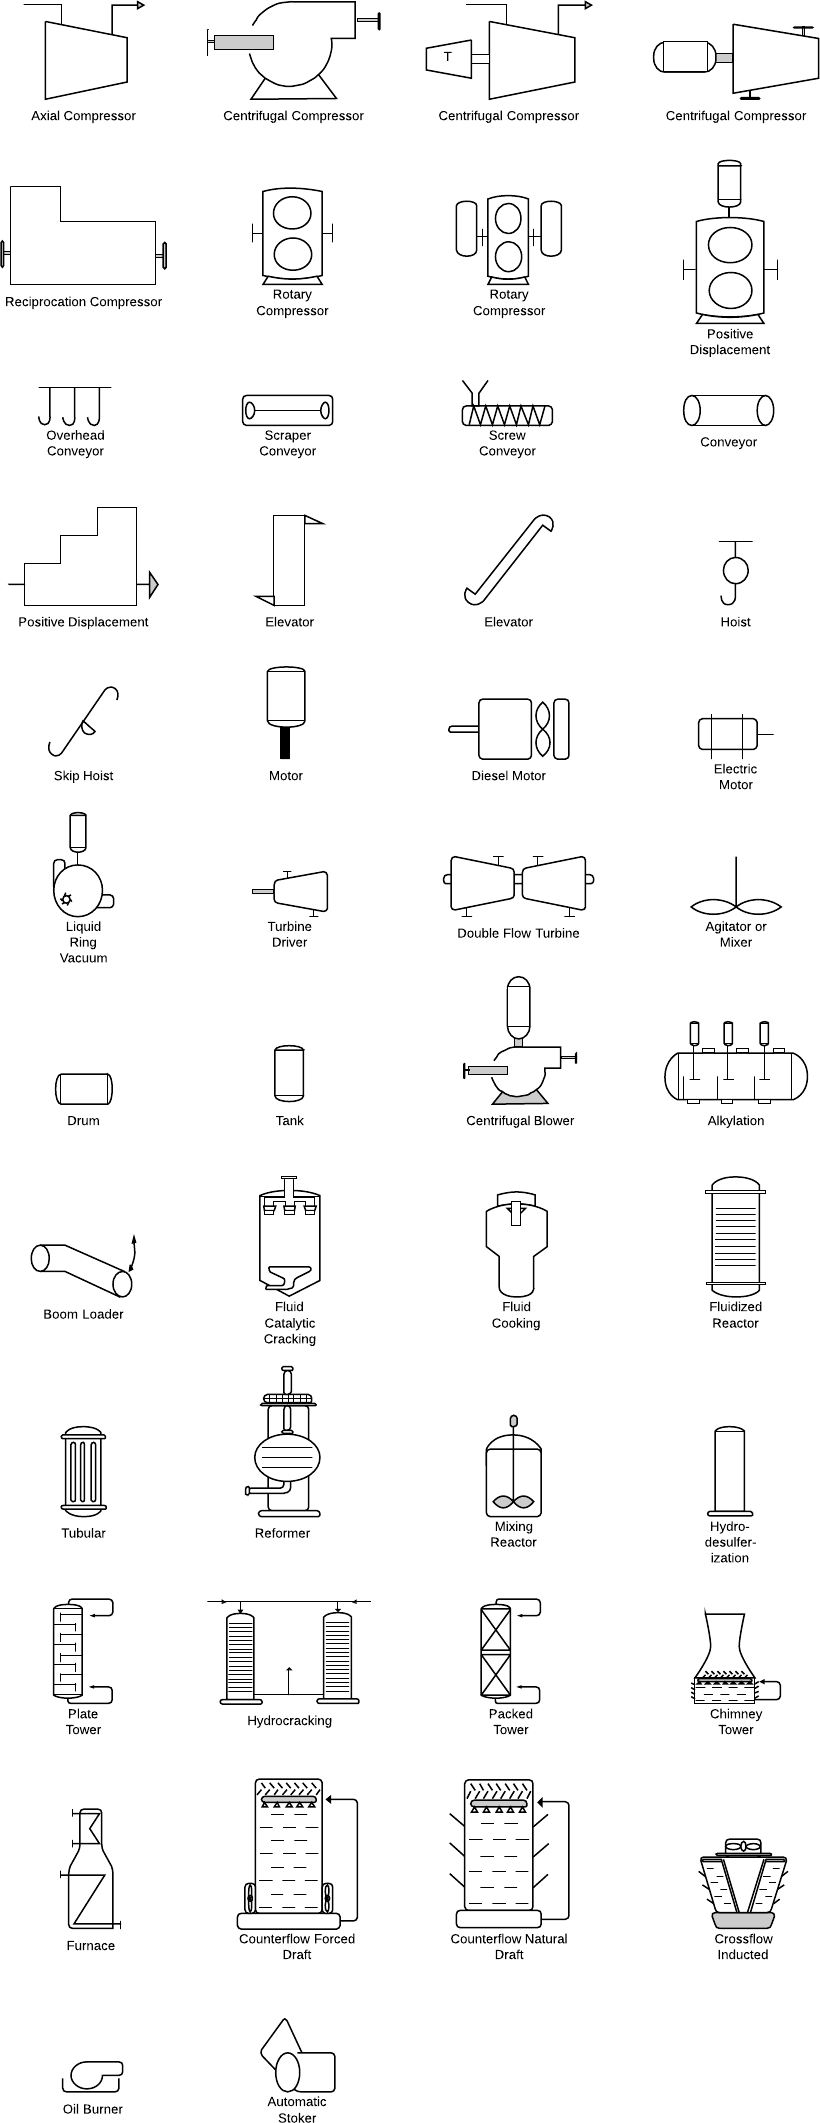 Choke Valve Symbols Schematics Wiring Diagram For Light Switch